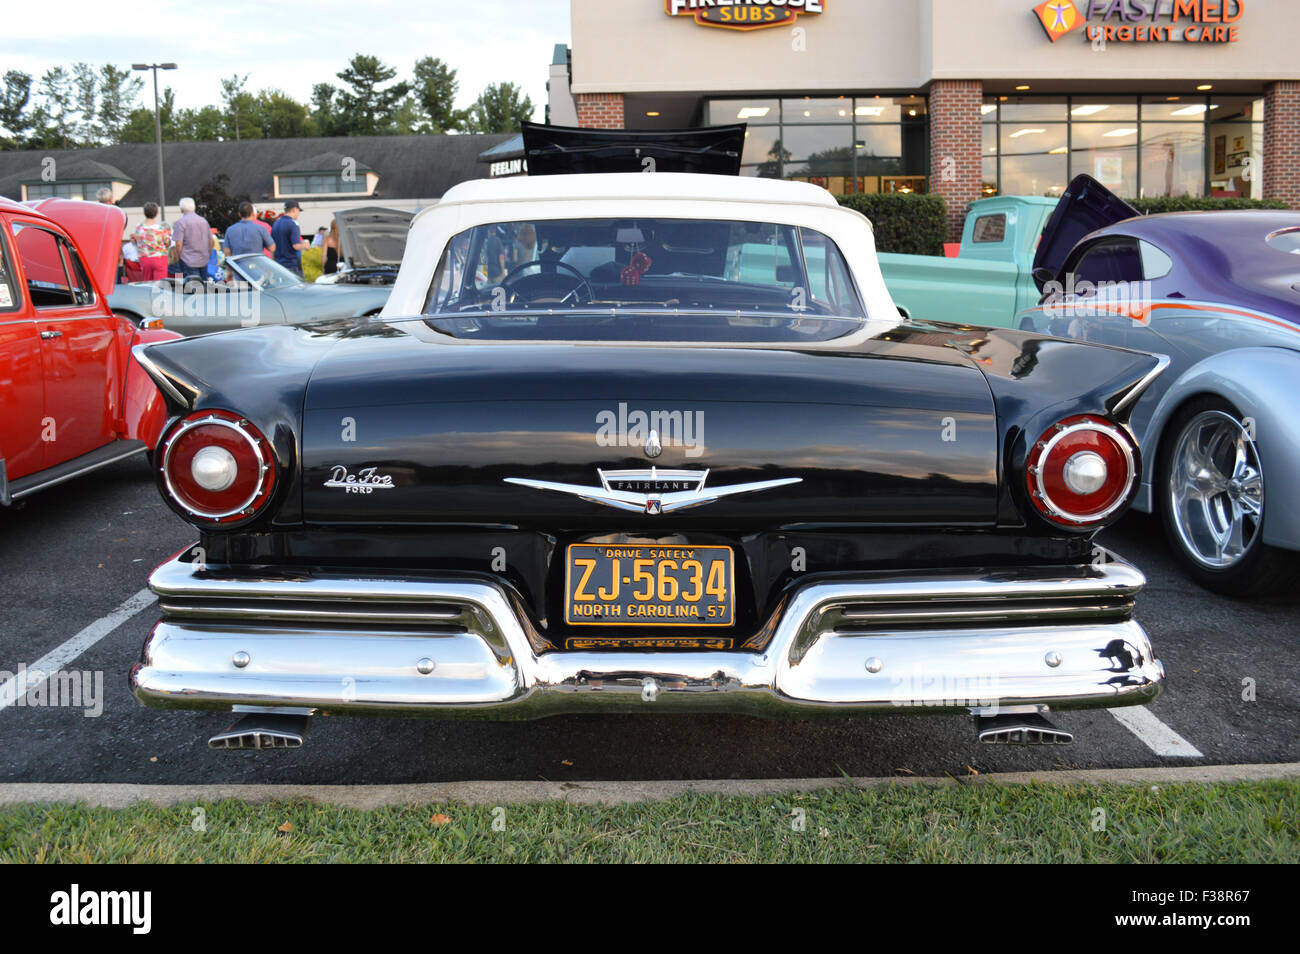 a 1957 ford fairlane 500 convertible stock photo 88089631 alamy